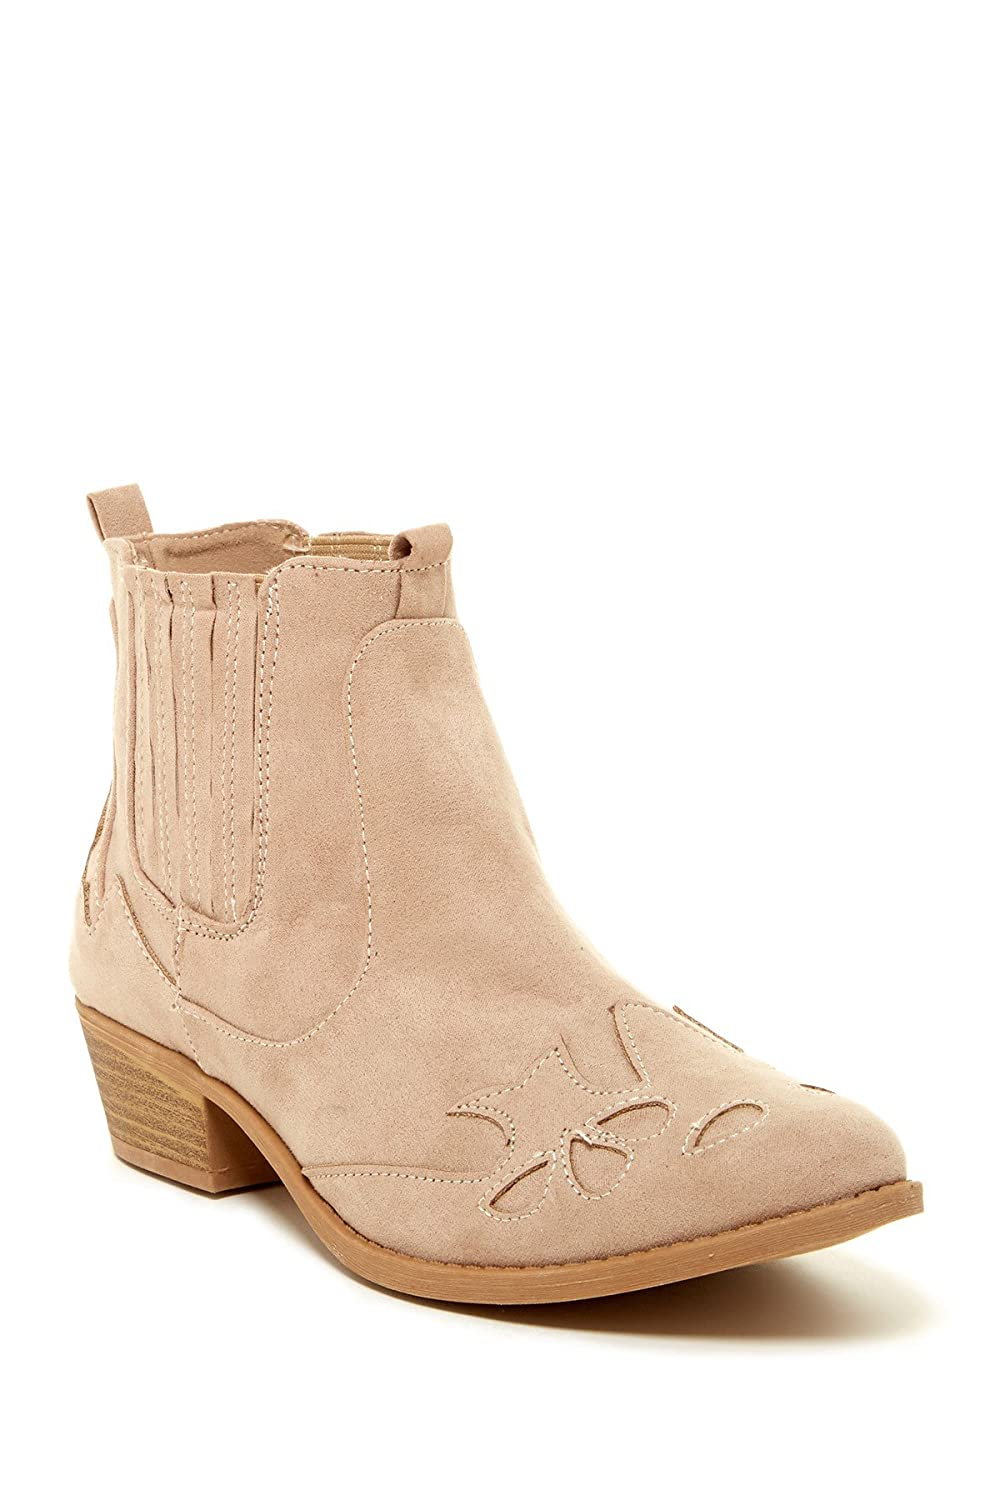 Women's Sochi Faux Suede Ankle Boot Heeled Shoe Bootie